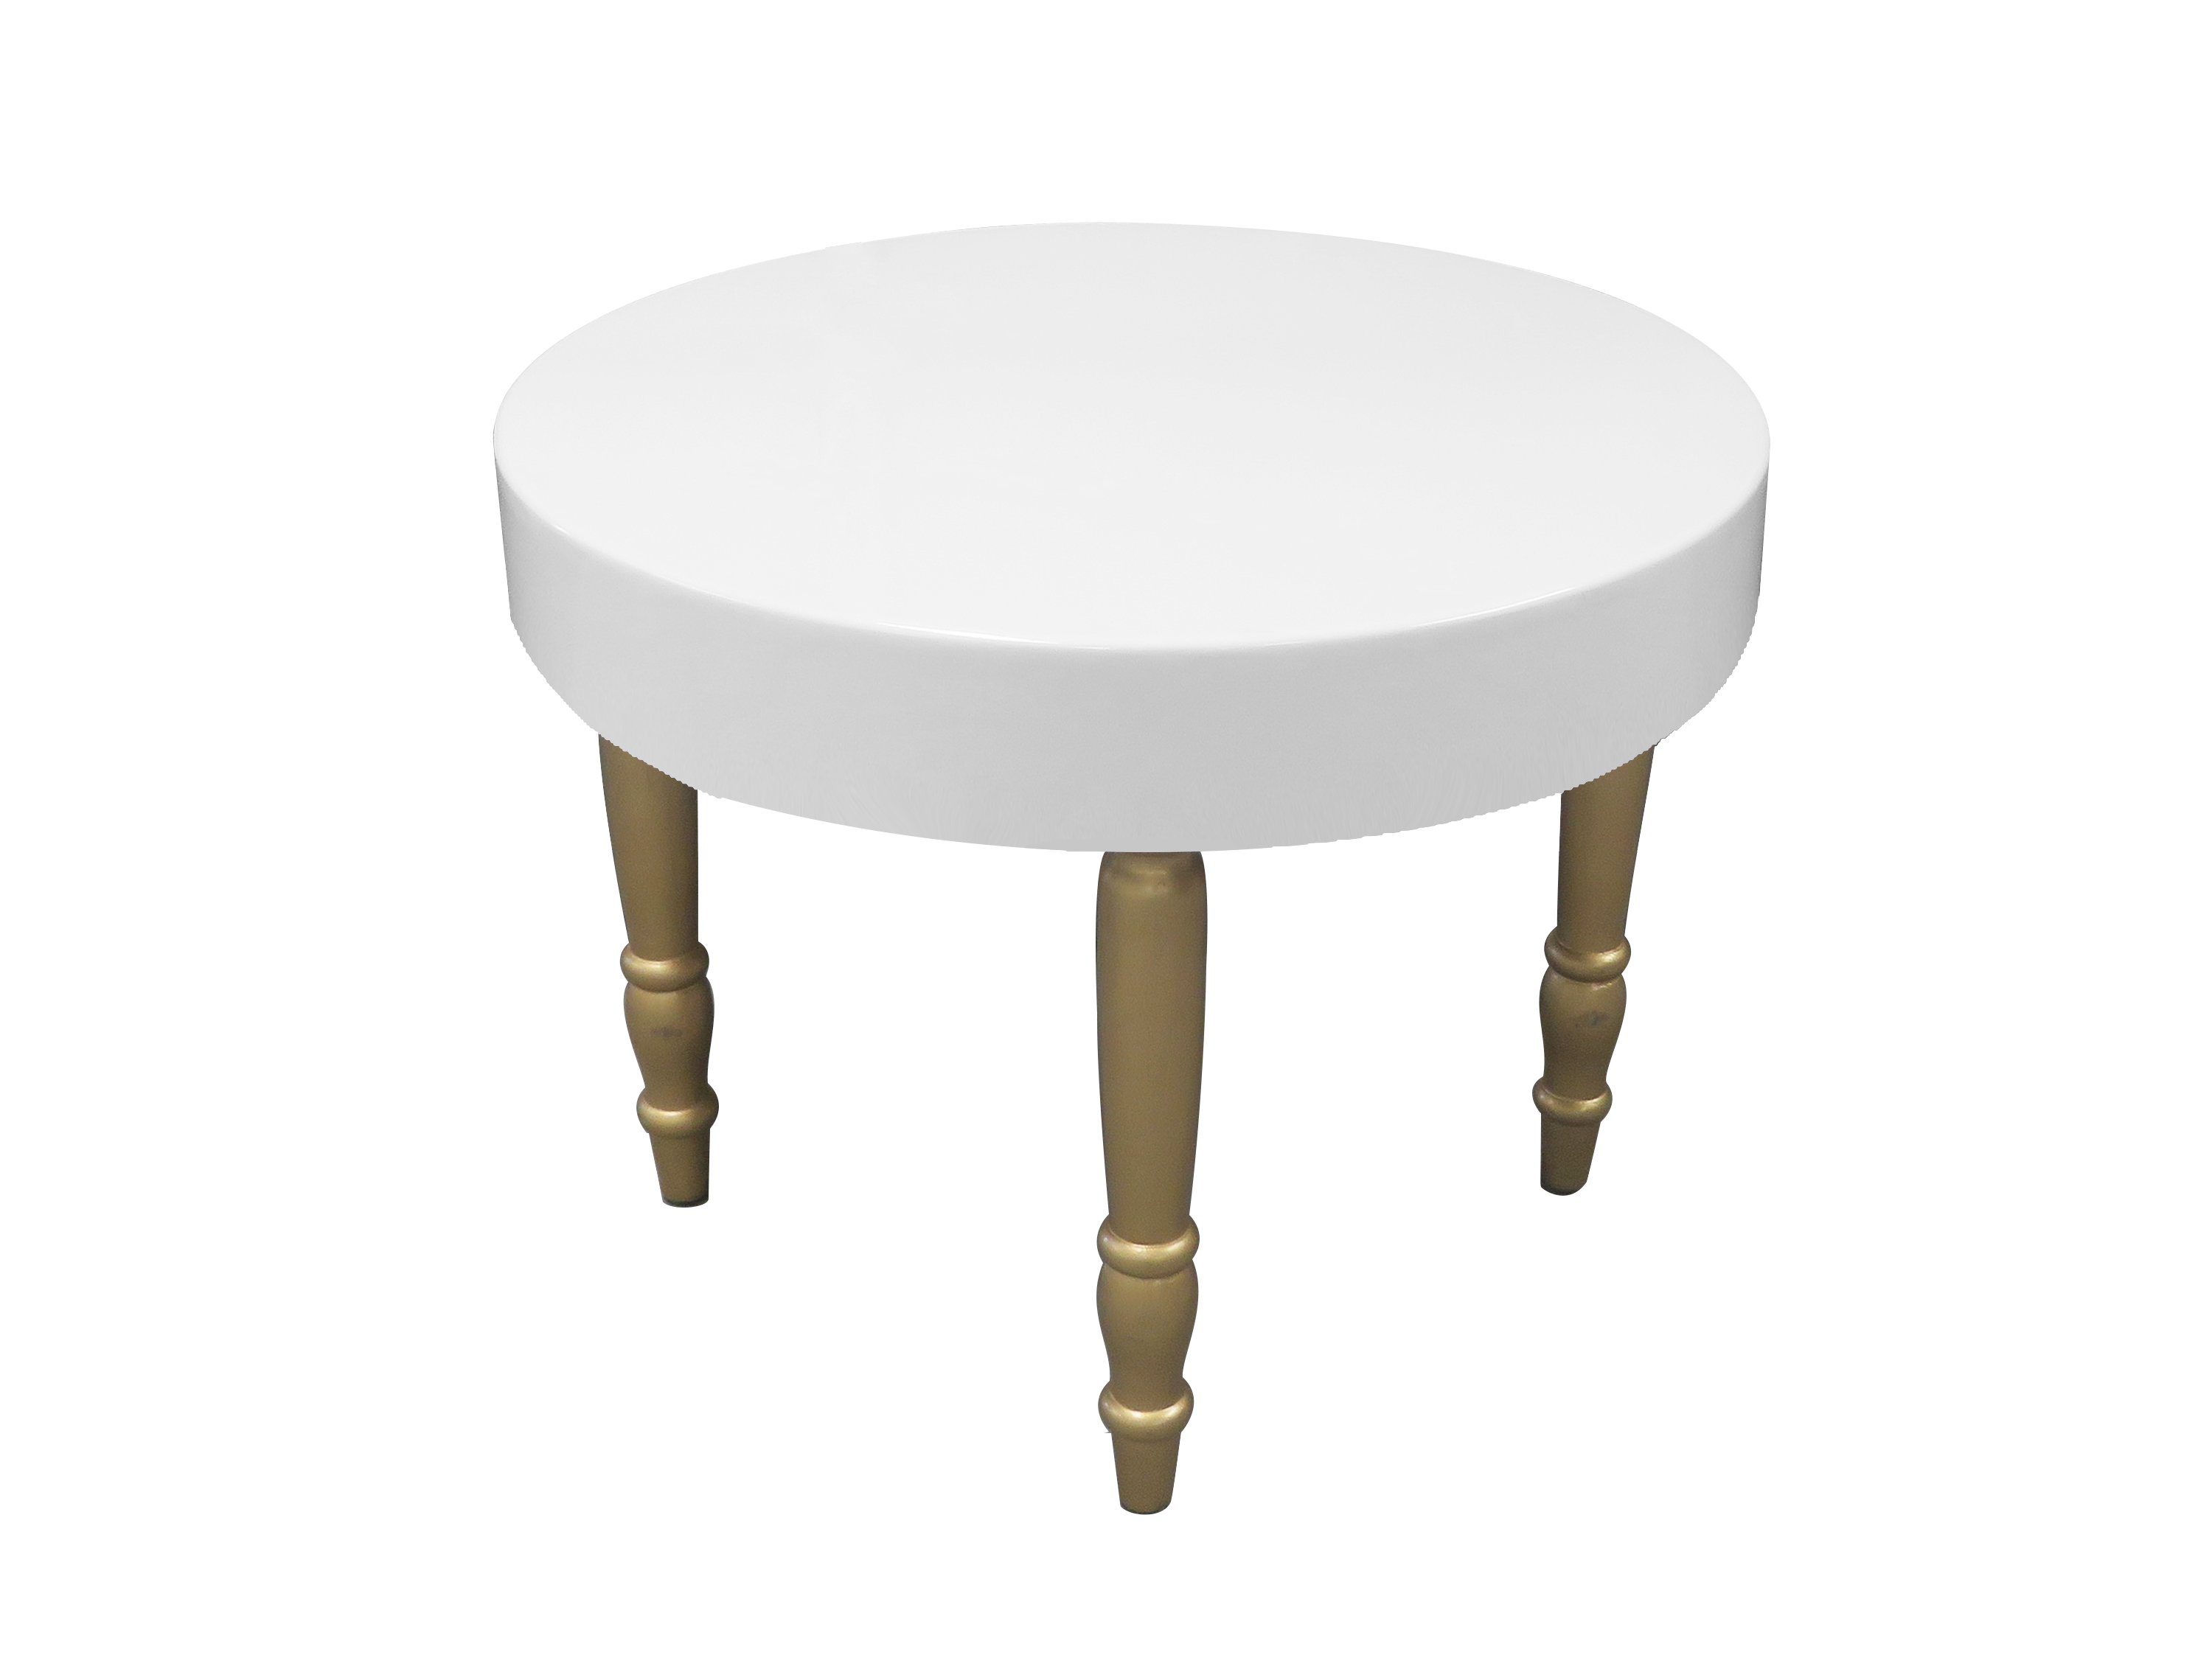 Rent Or Buy Avalon Round Gold Dining Table Event Rental  : avalon round gold dining table 1 from areeka.ae size 3000 x 2268 png 888kB